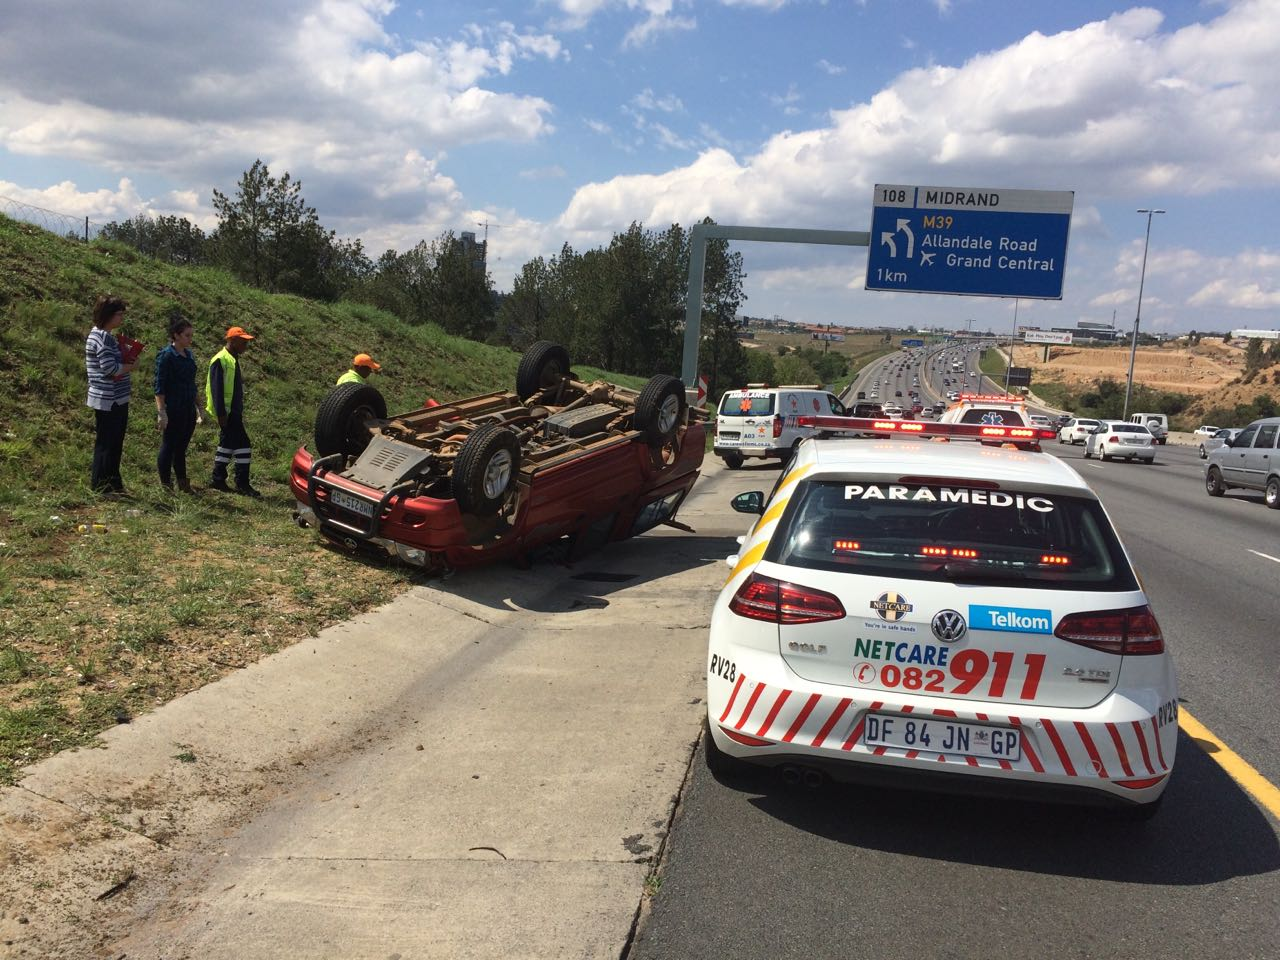 One injured after vehicle overturned on N1 North near Allandale off-ramp in Midrand.